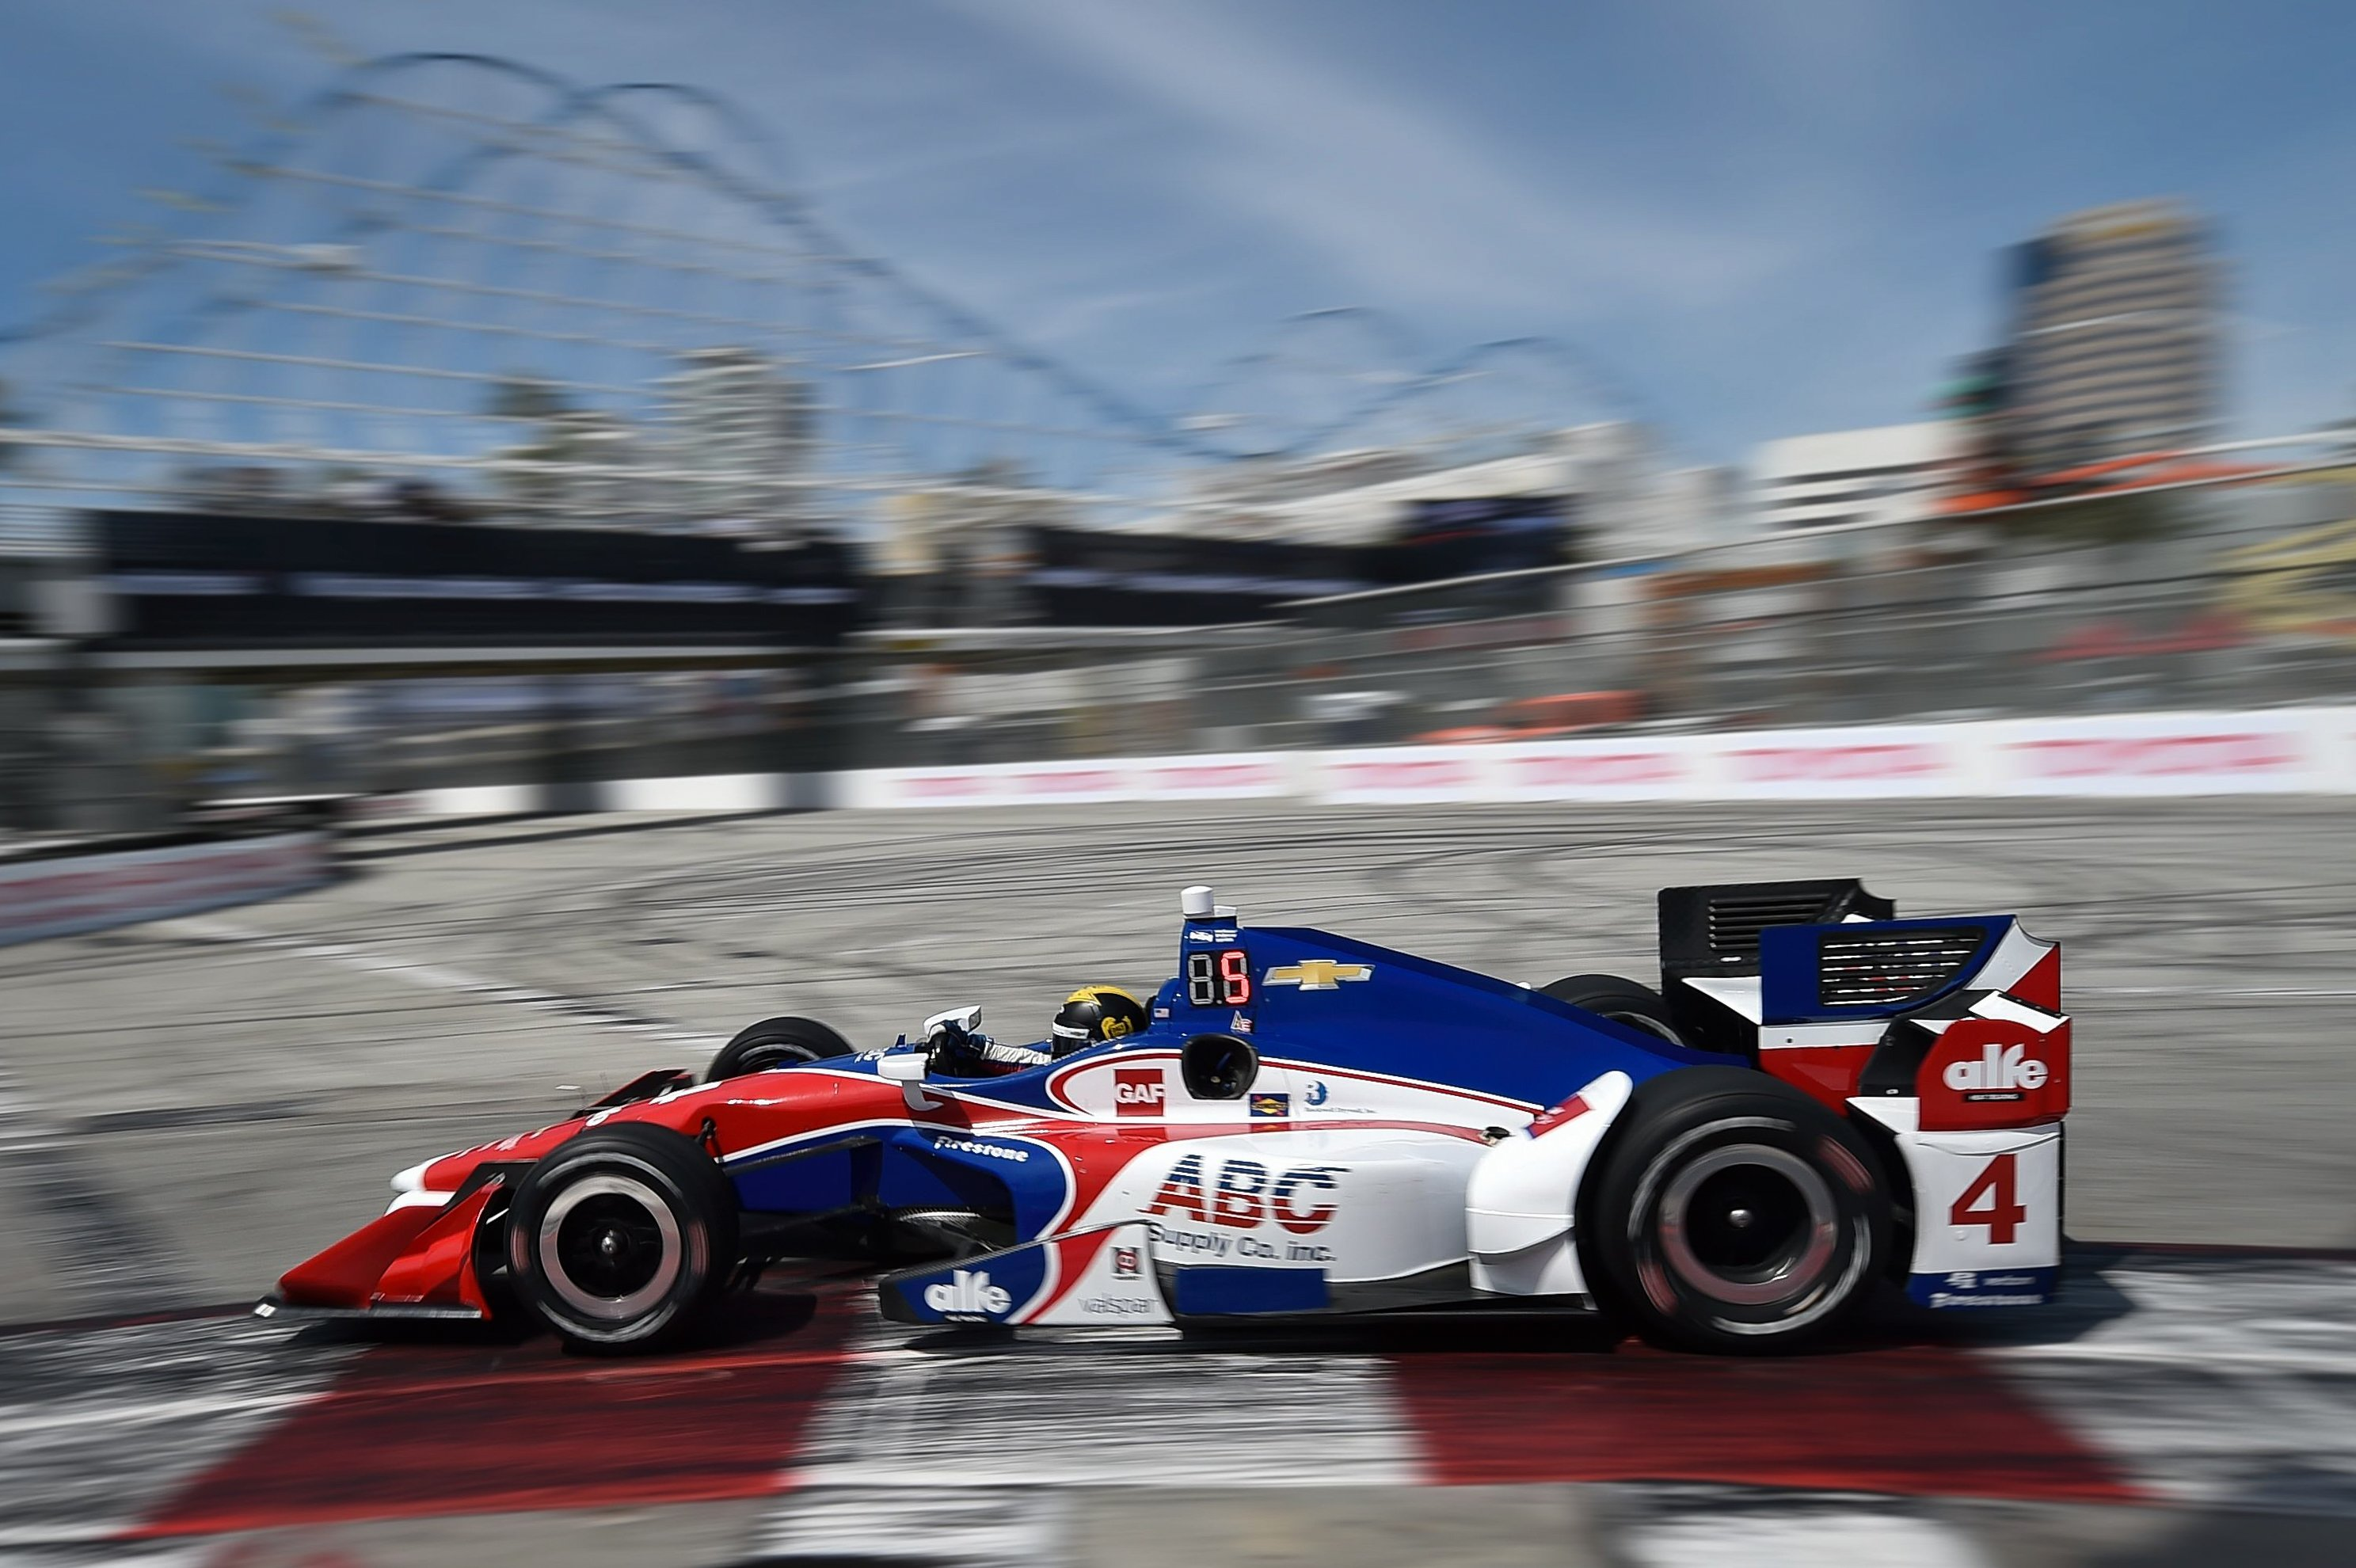 Conor Daly at the Toyota Grand Prix of Long Beach